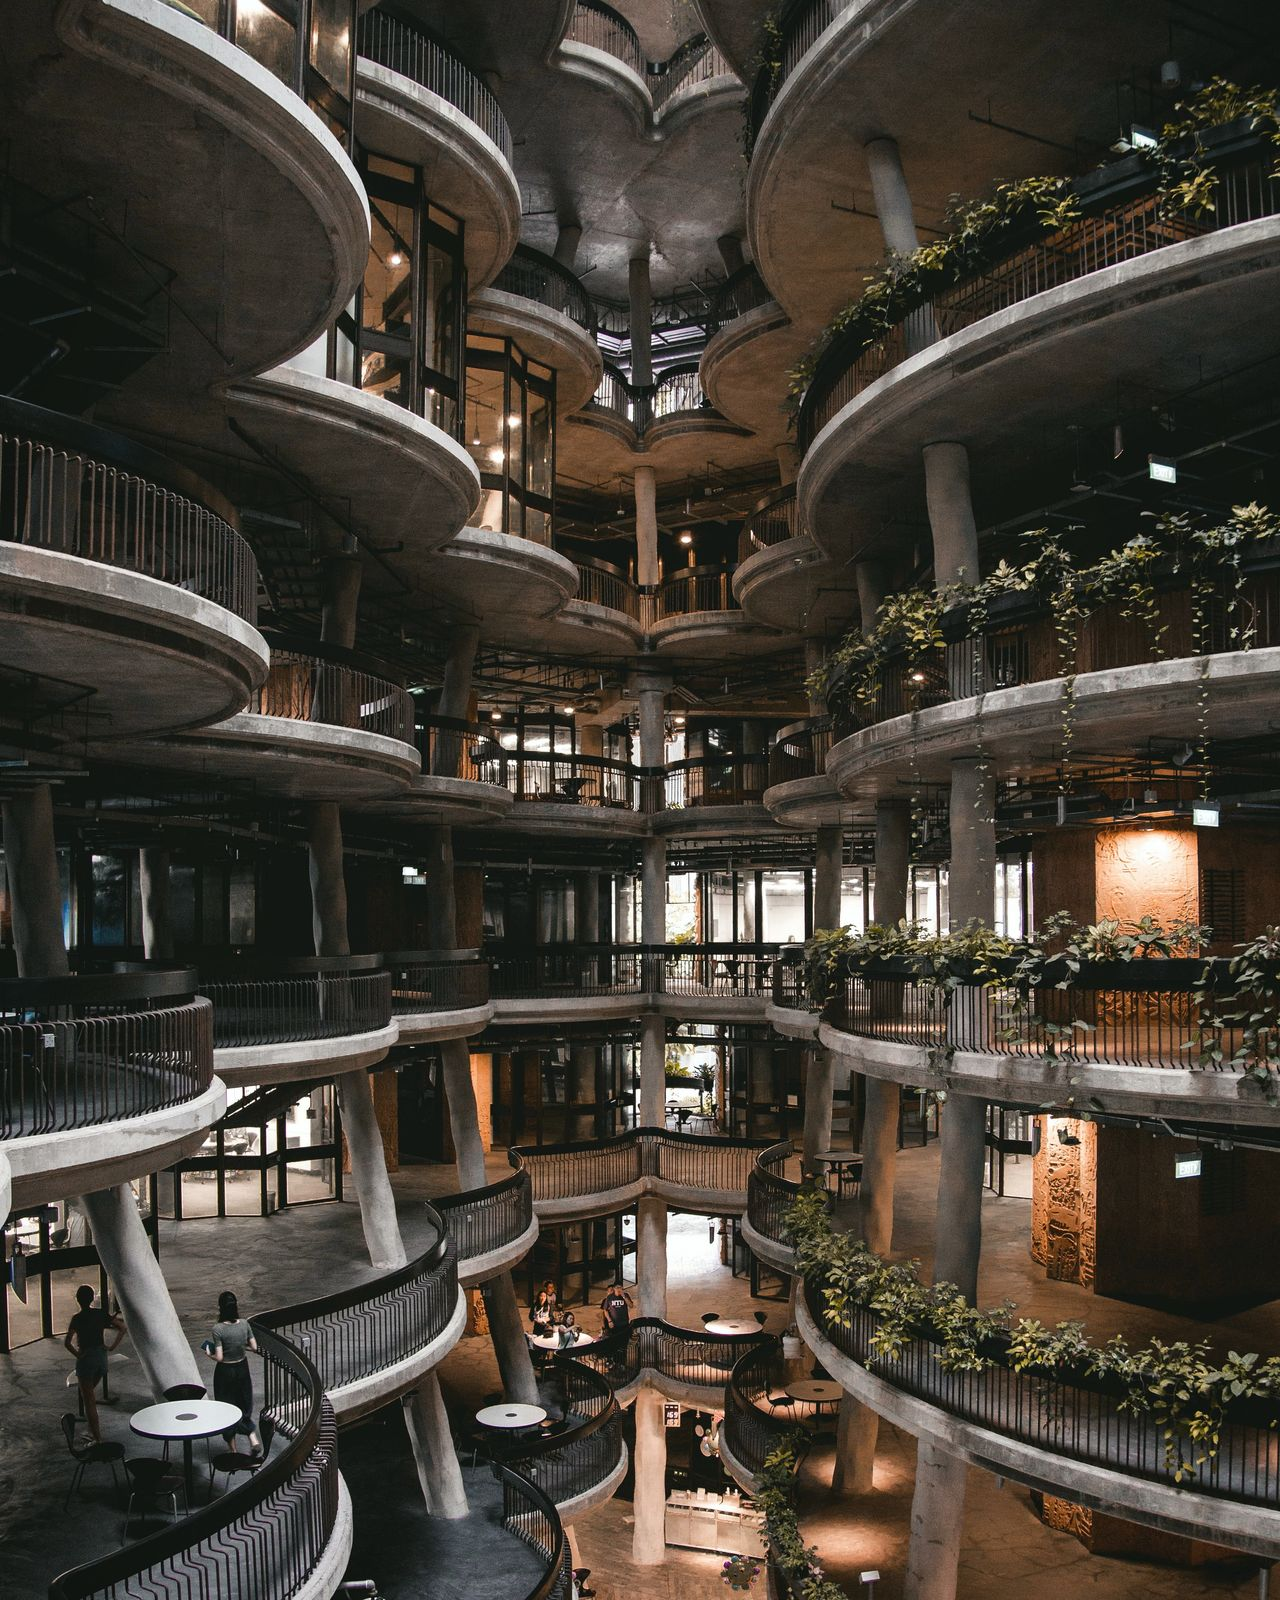 Hive Architecture Indoors  Illuminated Day Luxury Light Collection Light Architecture_collection Architecture Perspective Built Structure Building Interior Buildings Architecture Details Design Singapore The Hive Nanyang Technological University Perspective Photography